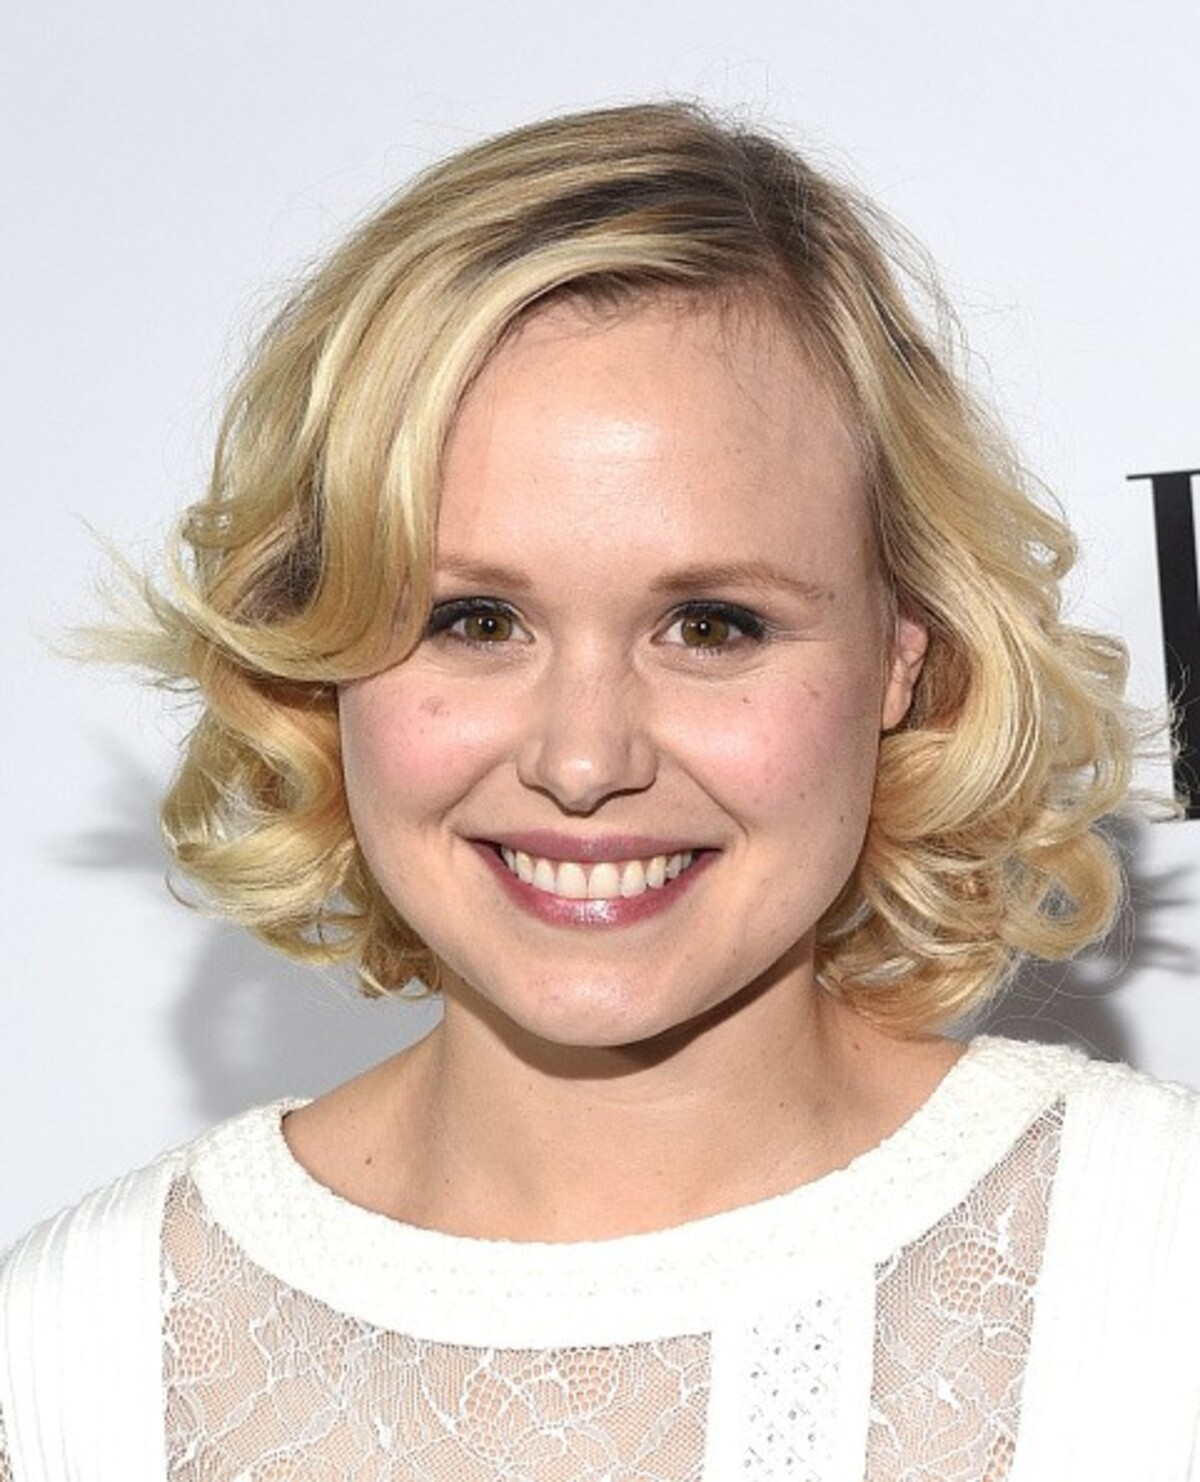 Alison Pill Fotos alison pill net worth | celebrity net worth